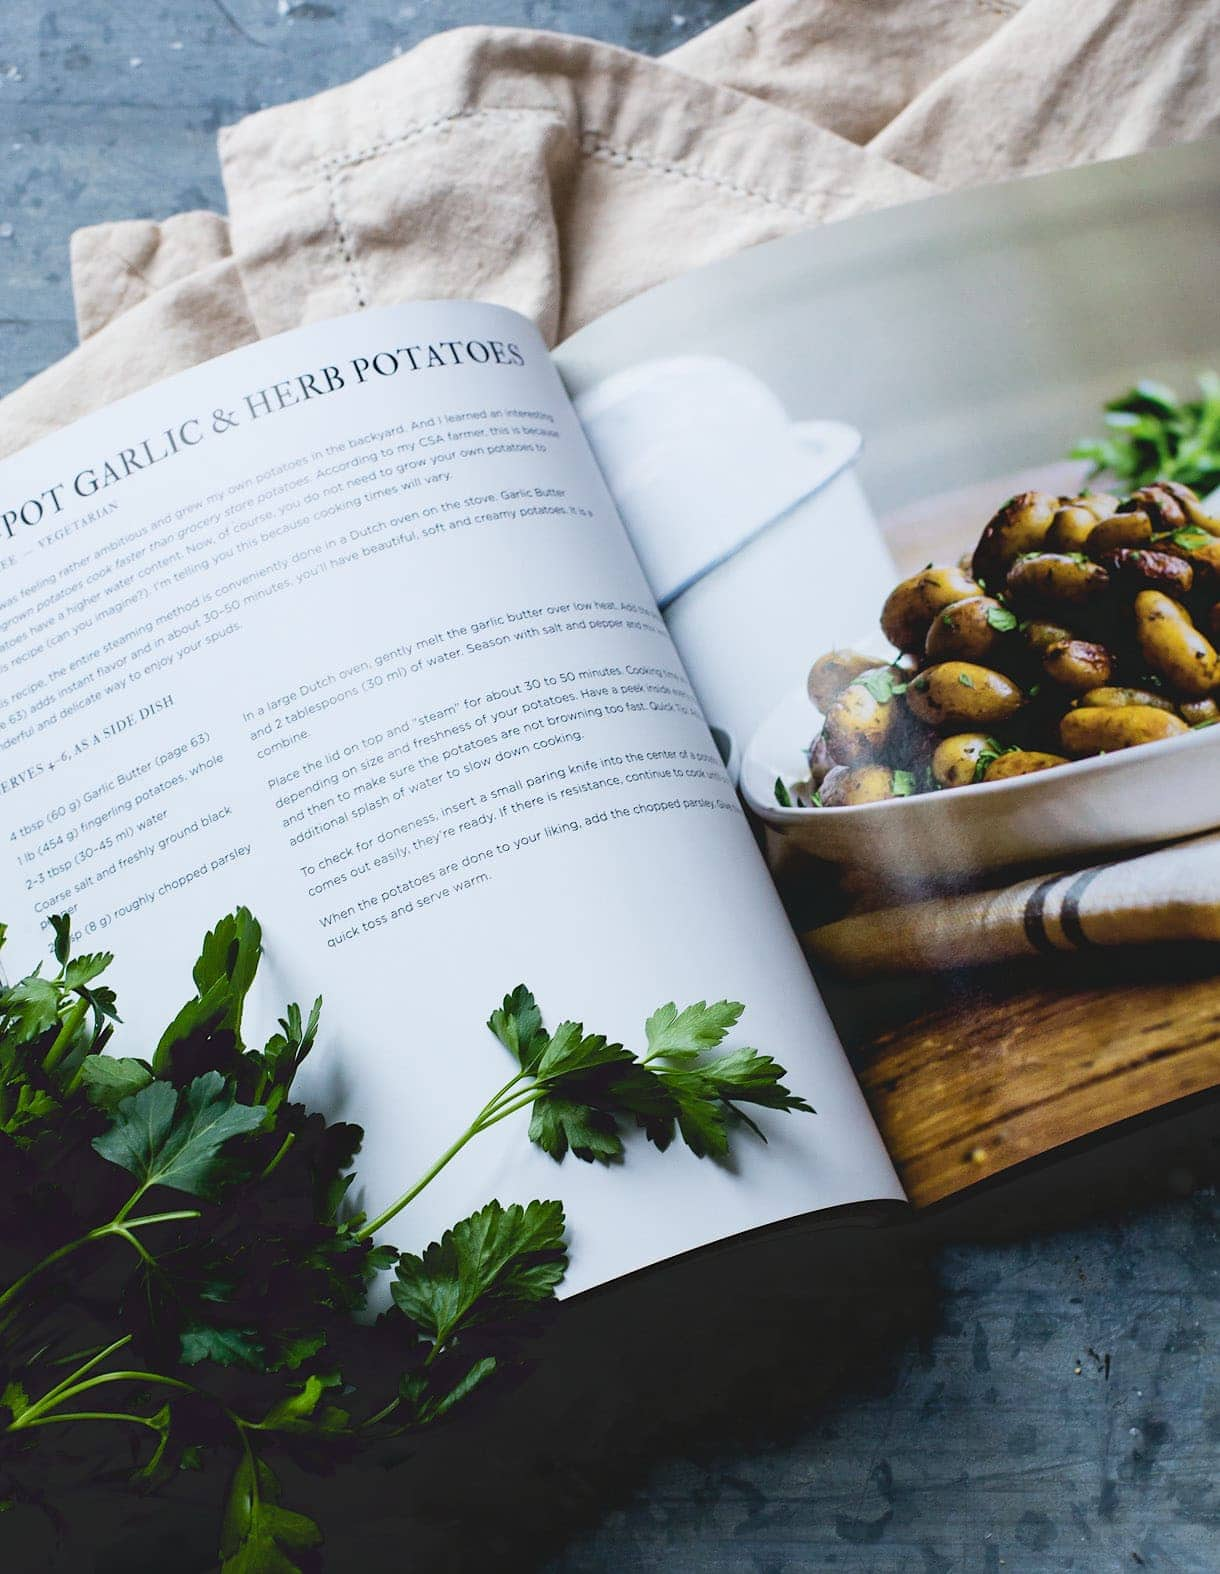 Garlic Butter Fingerling Potatoes from The Clever Cookbook